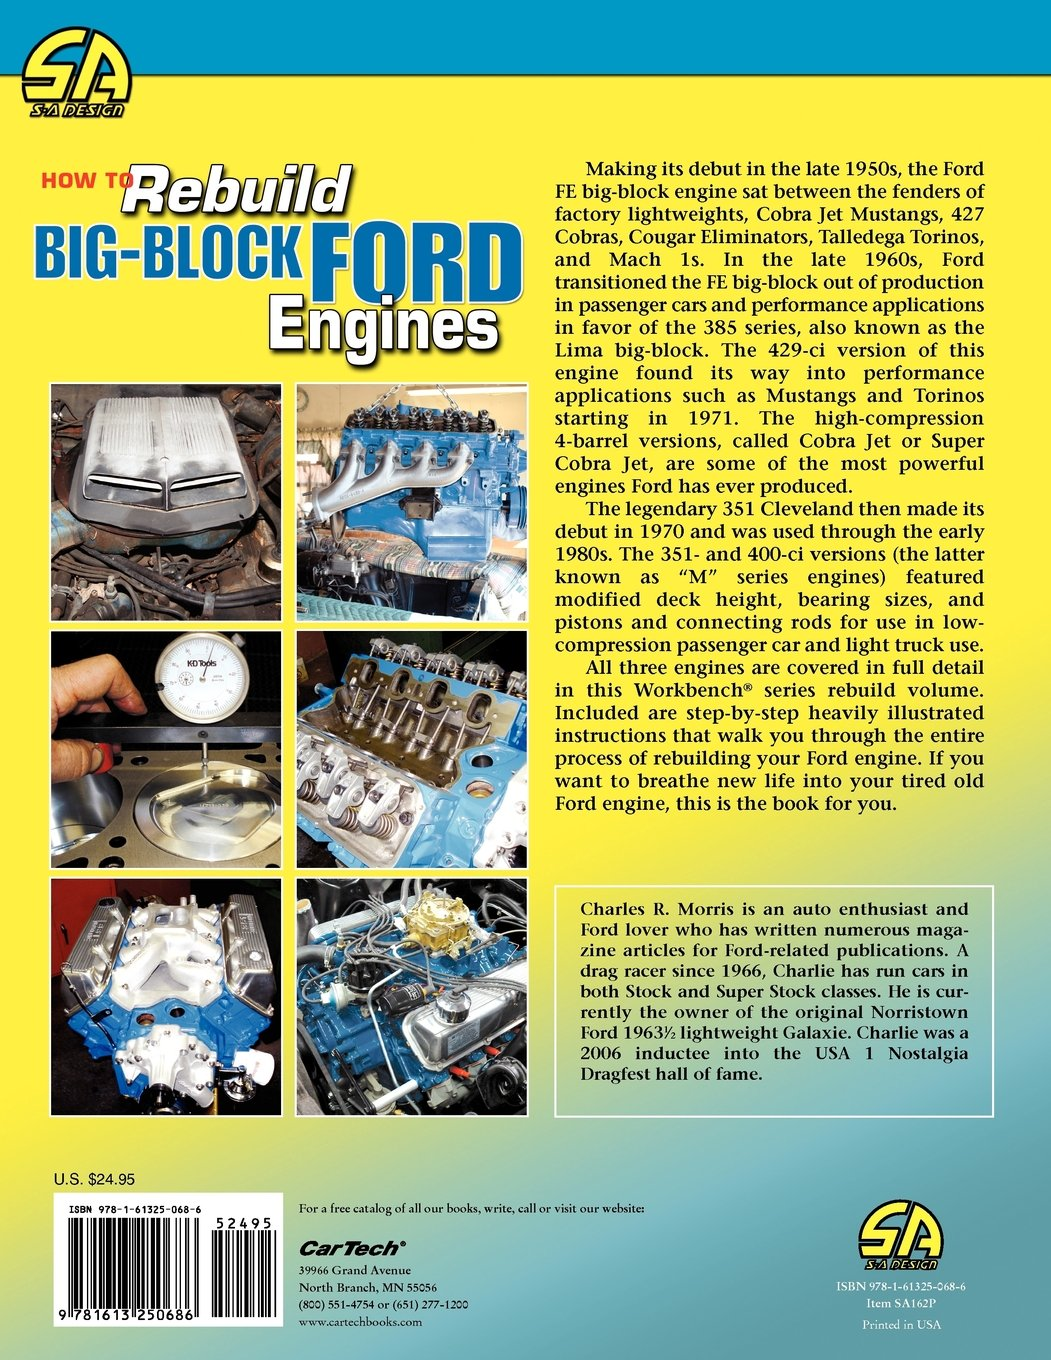 How to rebuild big block ford engines workbench how to charles how to rebuild big block ford engines workbench how to charles morris 9781613250686 amazon books fandeluxe